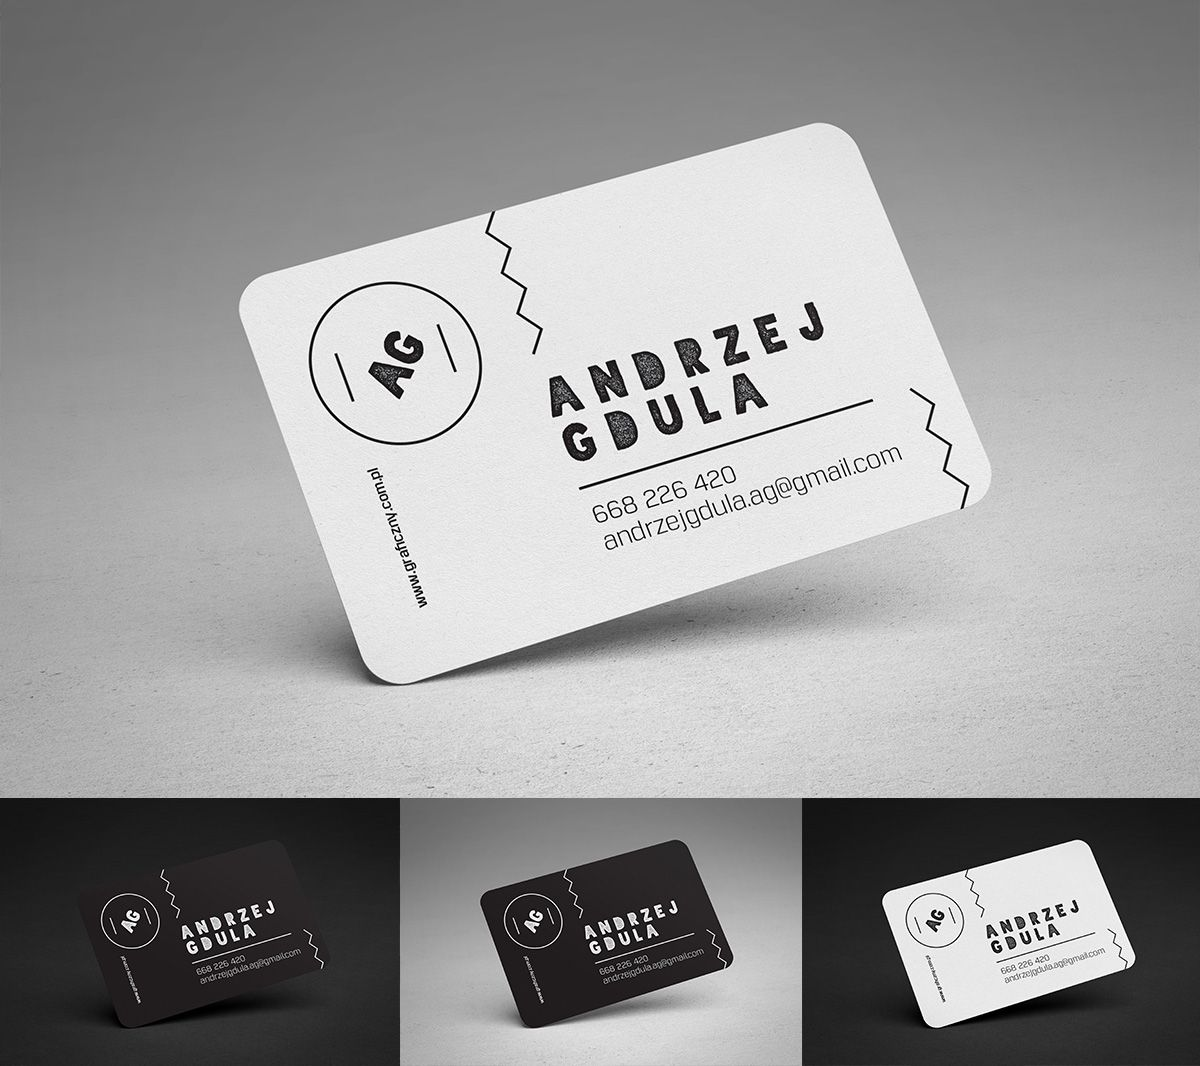 Rounded corner business card mockup #free #psd #photoshop | Mockups ...